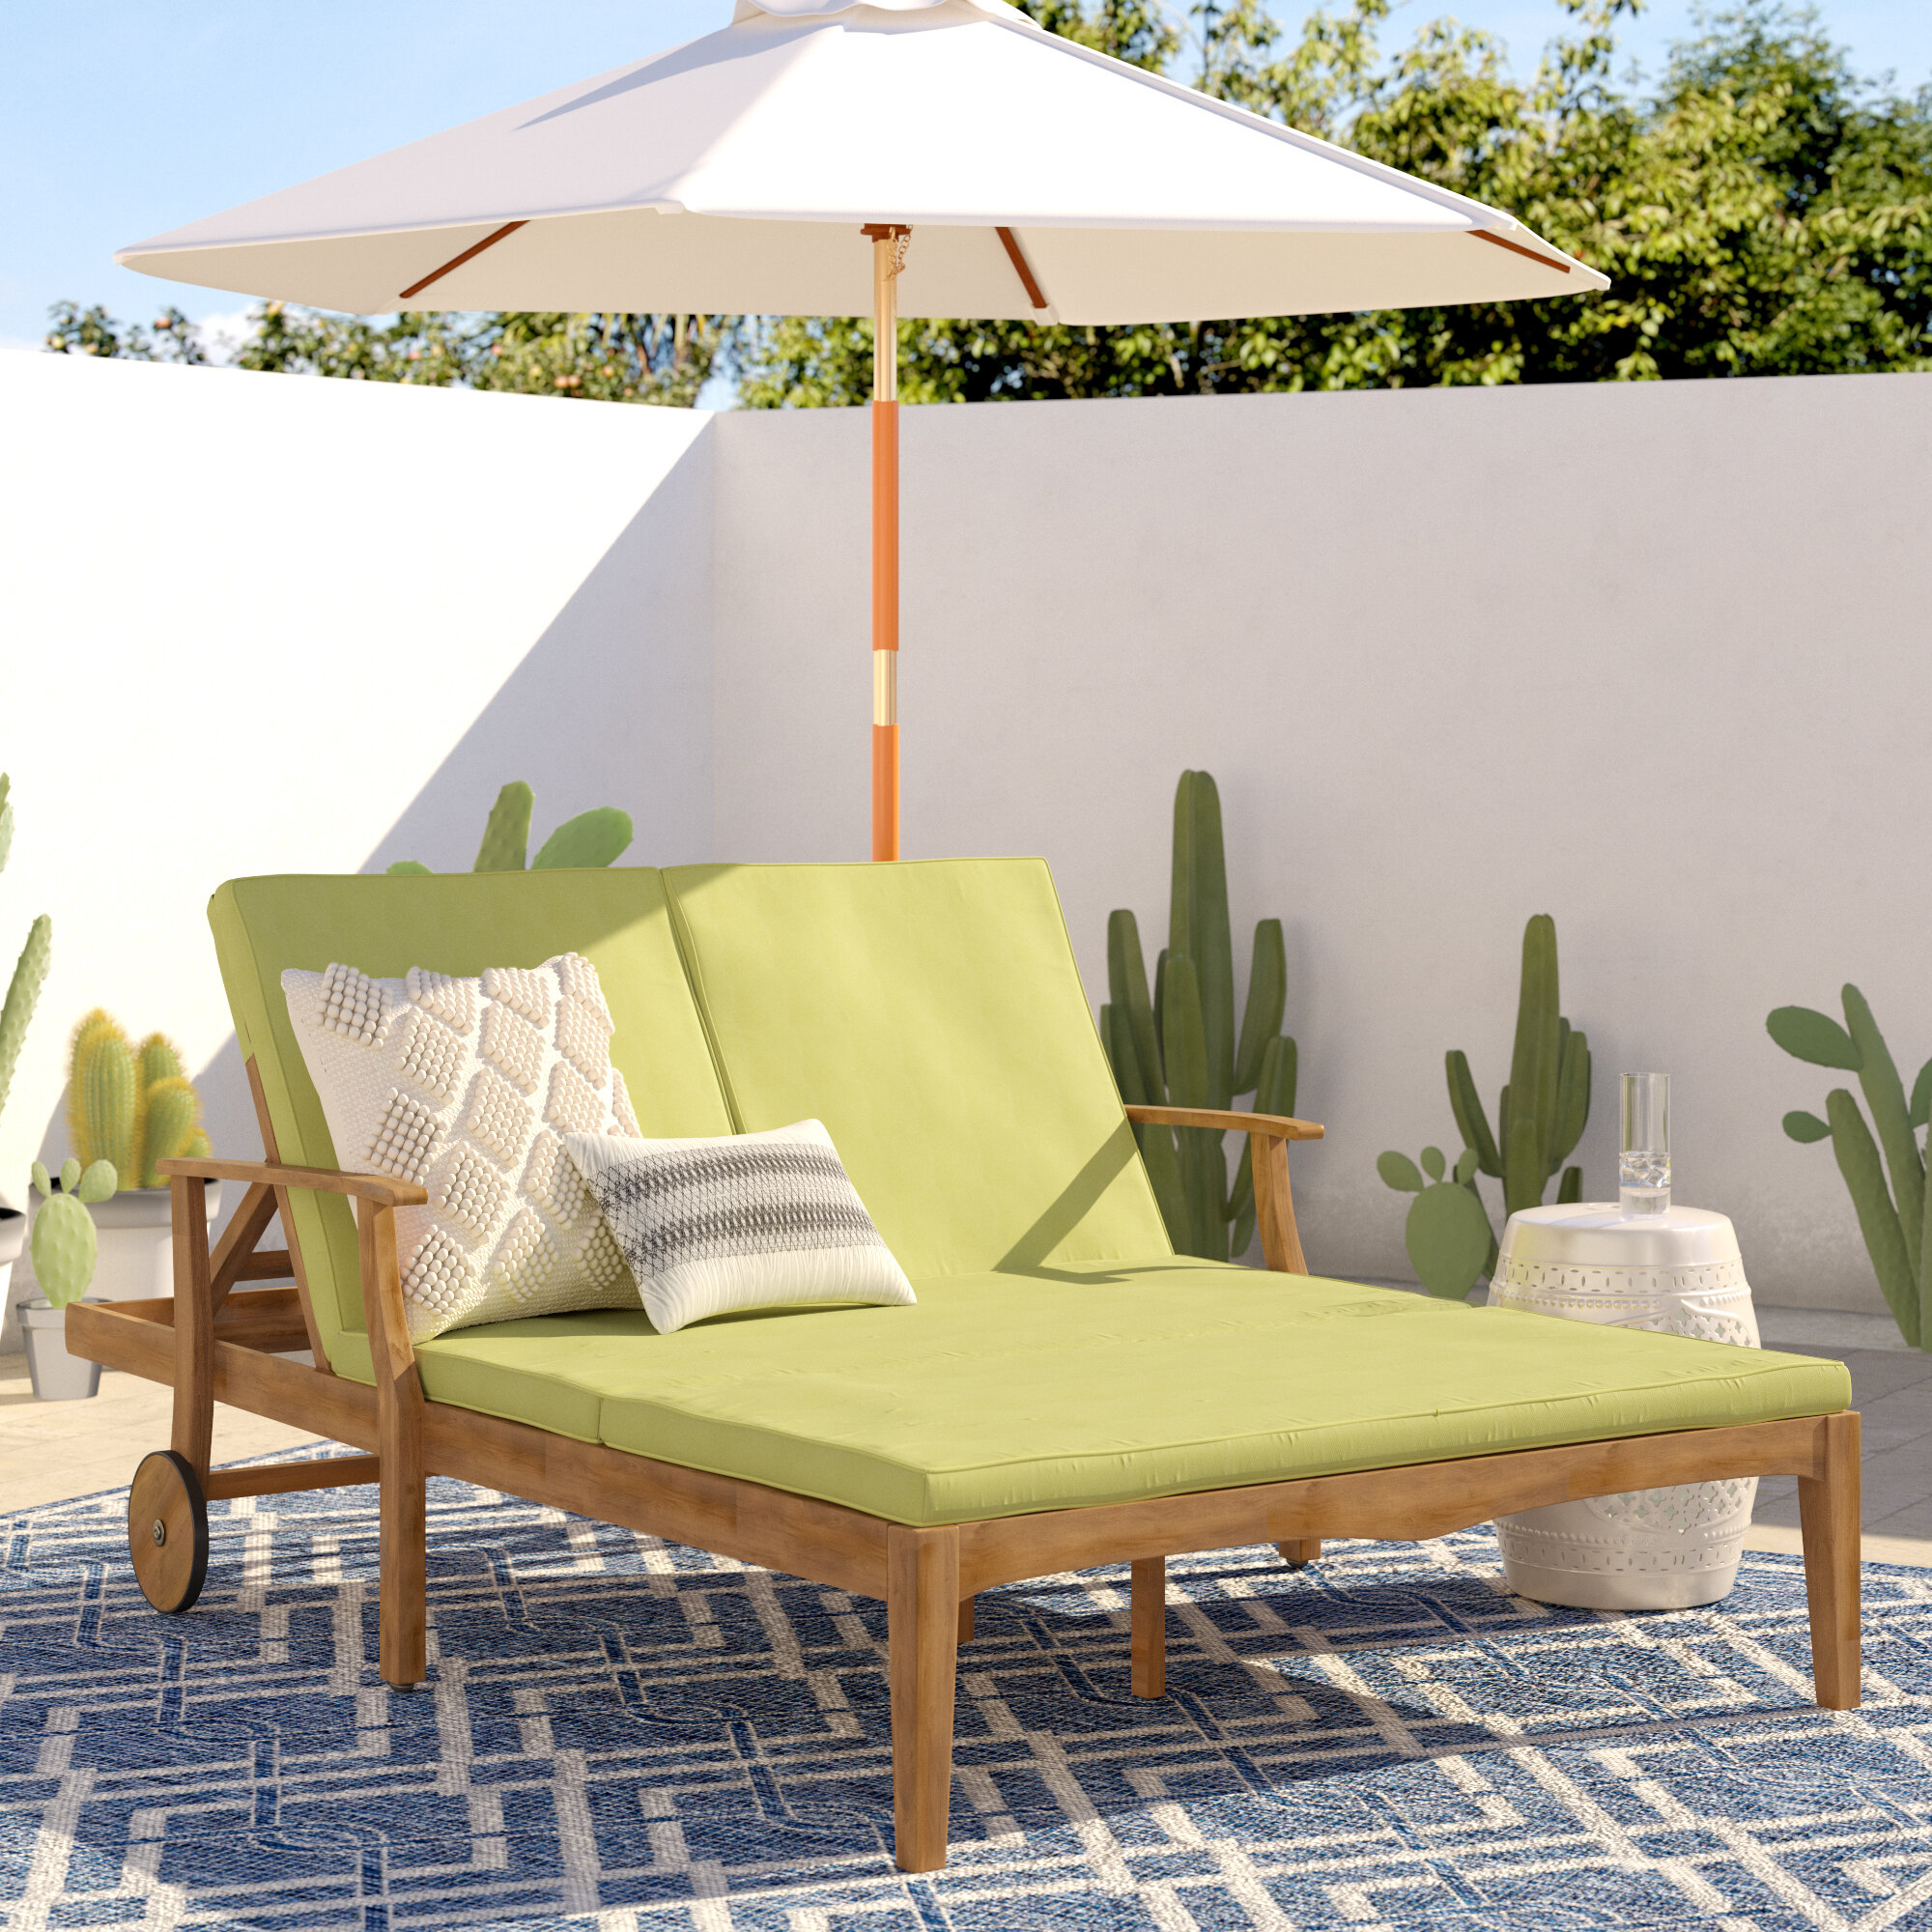 Surprising Antonia Double Reclining Teak Chaise Lounge With Cushion Bralicious Painted Fabric Chair Ideas Braliciousco